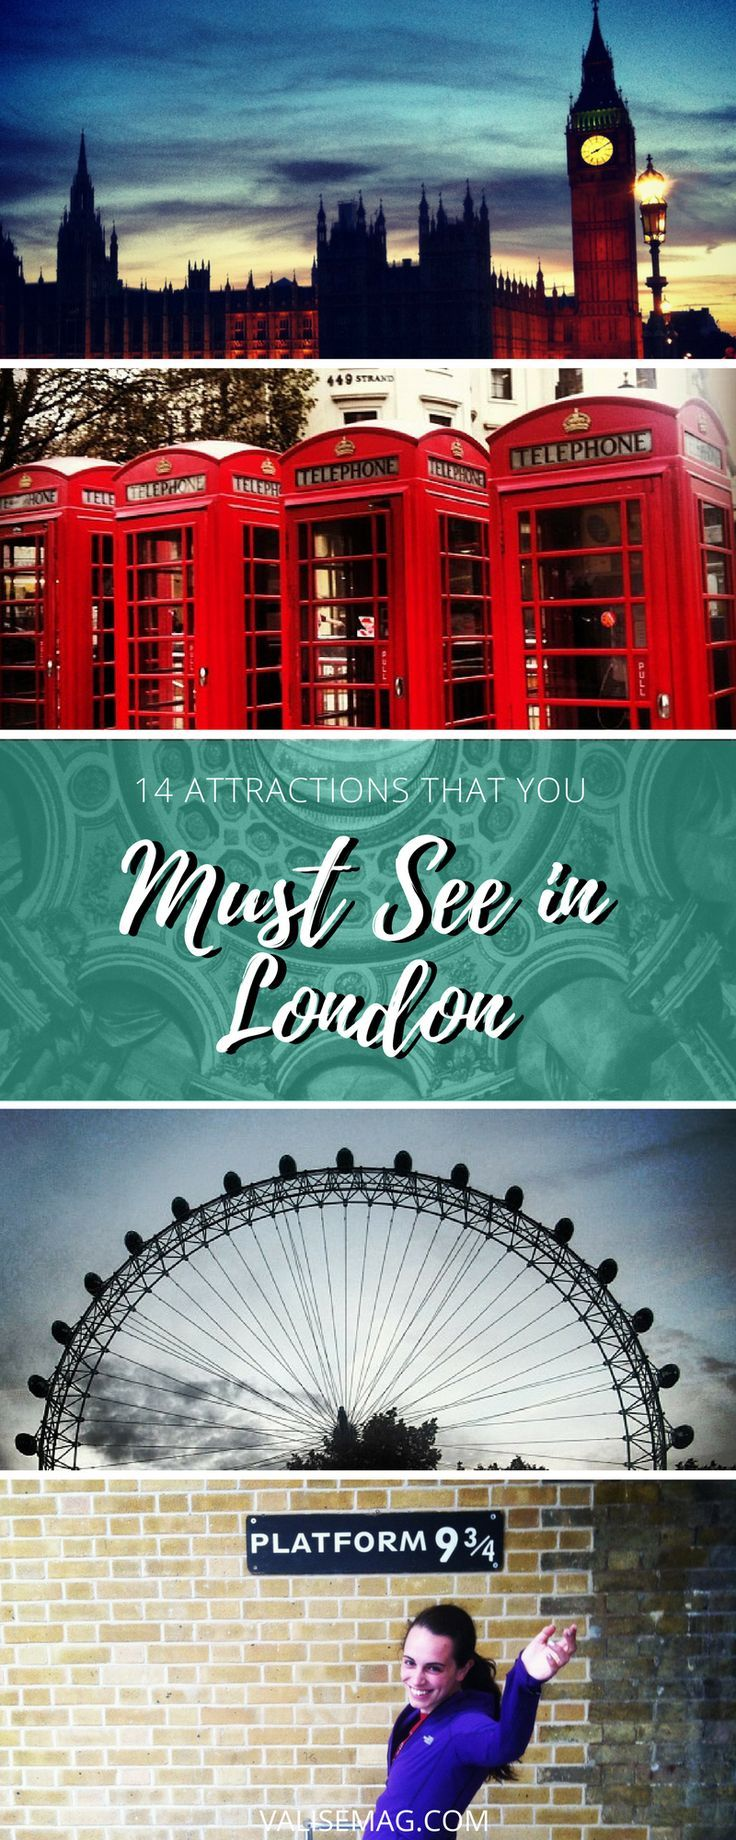 What better way to highlight the best attractions you must see when in London? Here are 14 unmissable sights in London – they're a true slice of life.